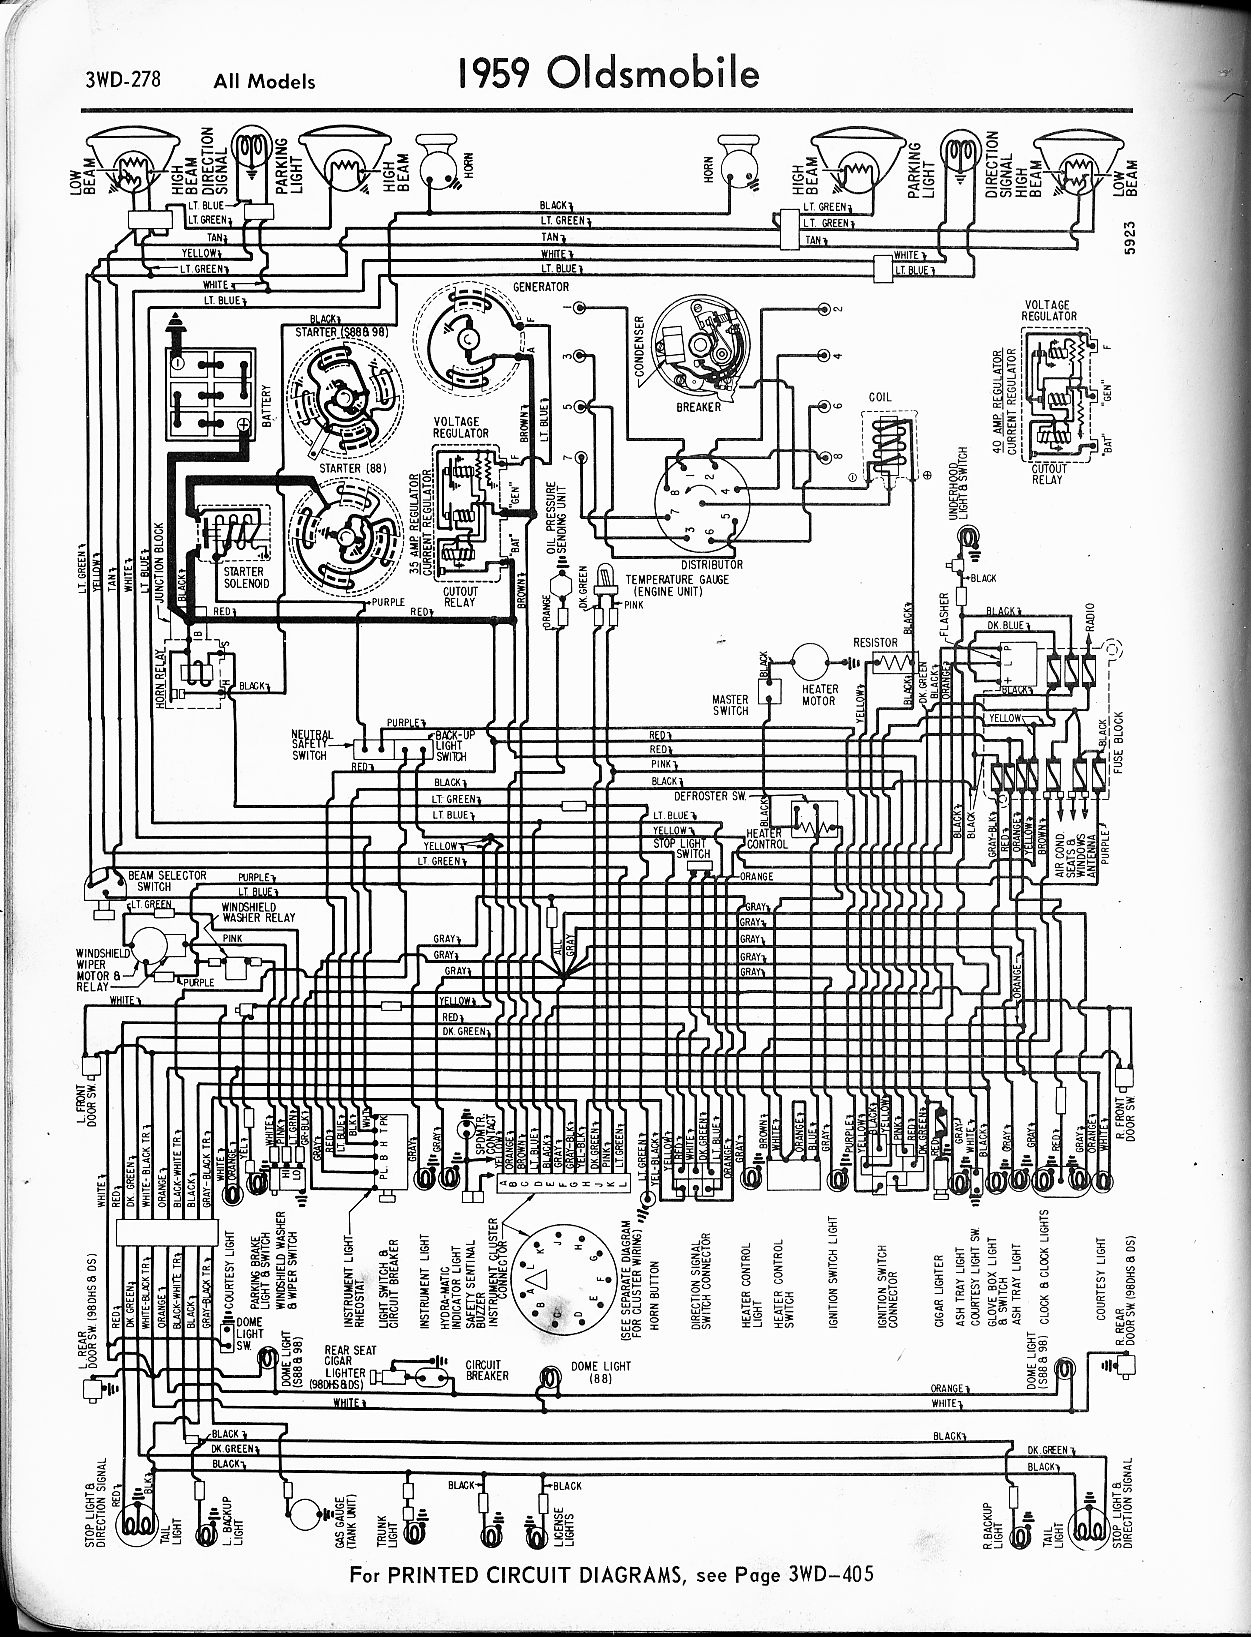 Diagrams layout for sienna fuse box toyota sienna mwire quality strip jpg  1251x1637 2003 toyota sienna